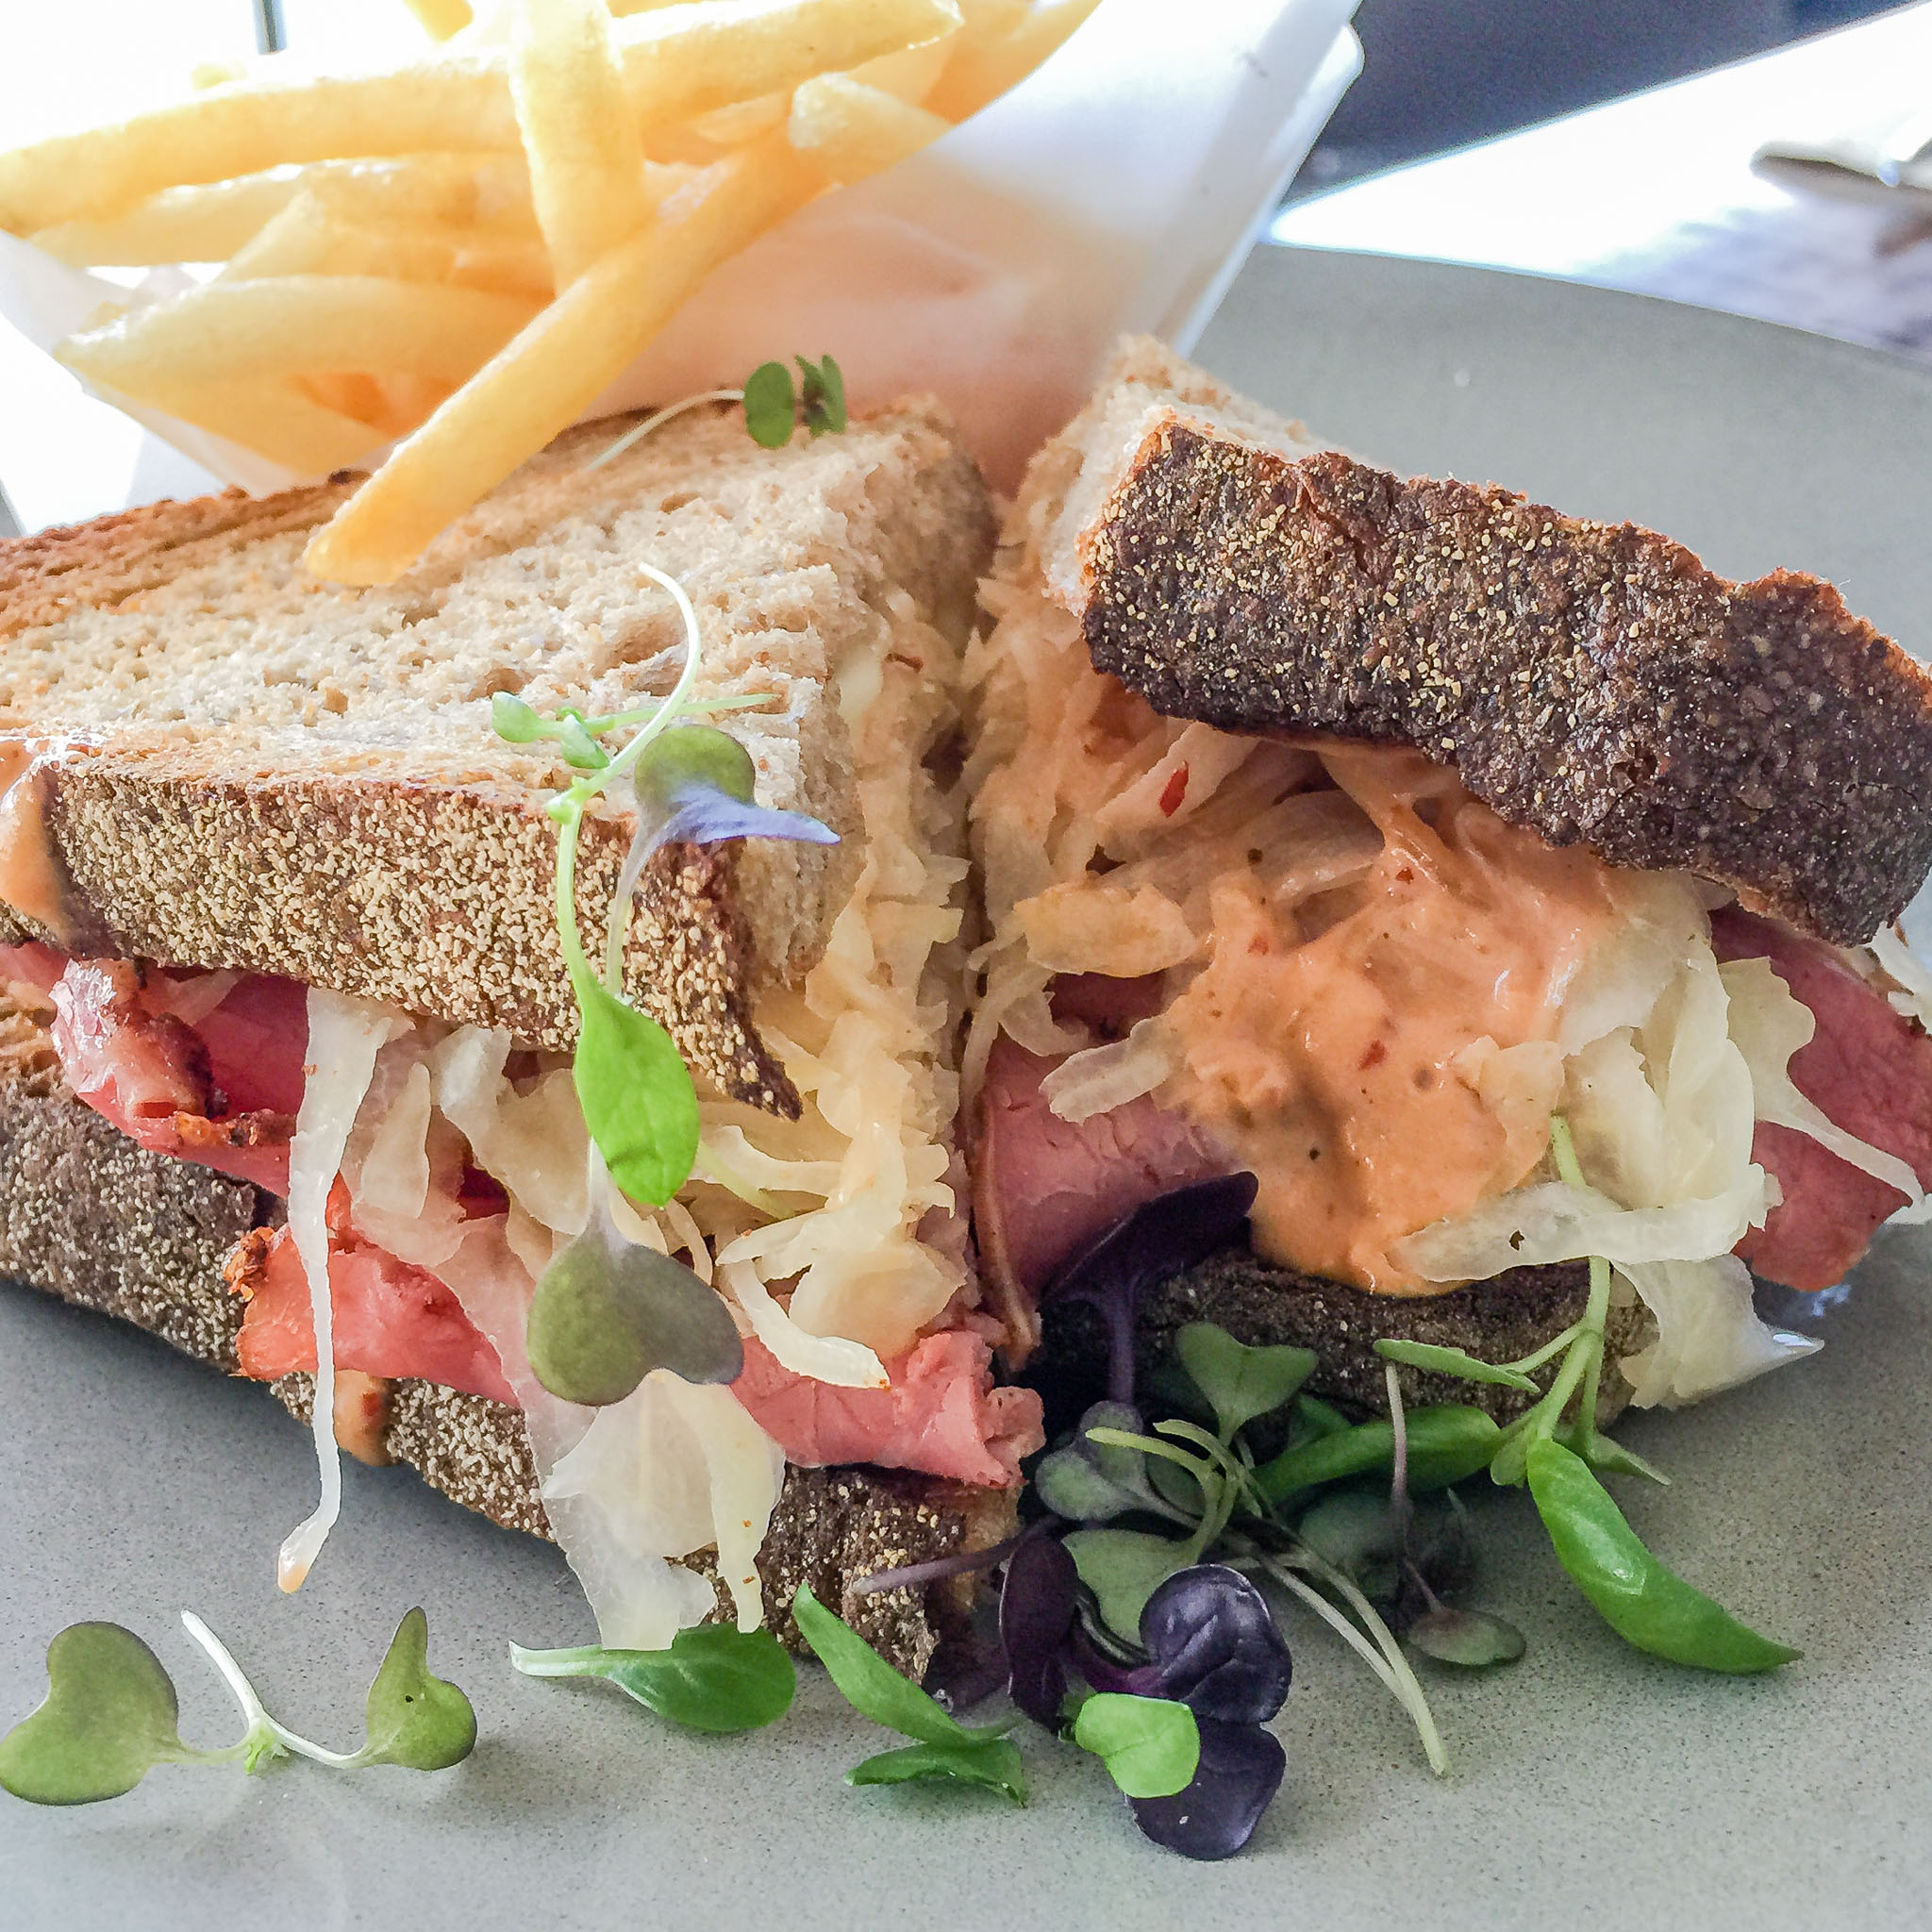 Saturday lunch. Reuben sandwich at Ricardo's Cafe.